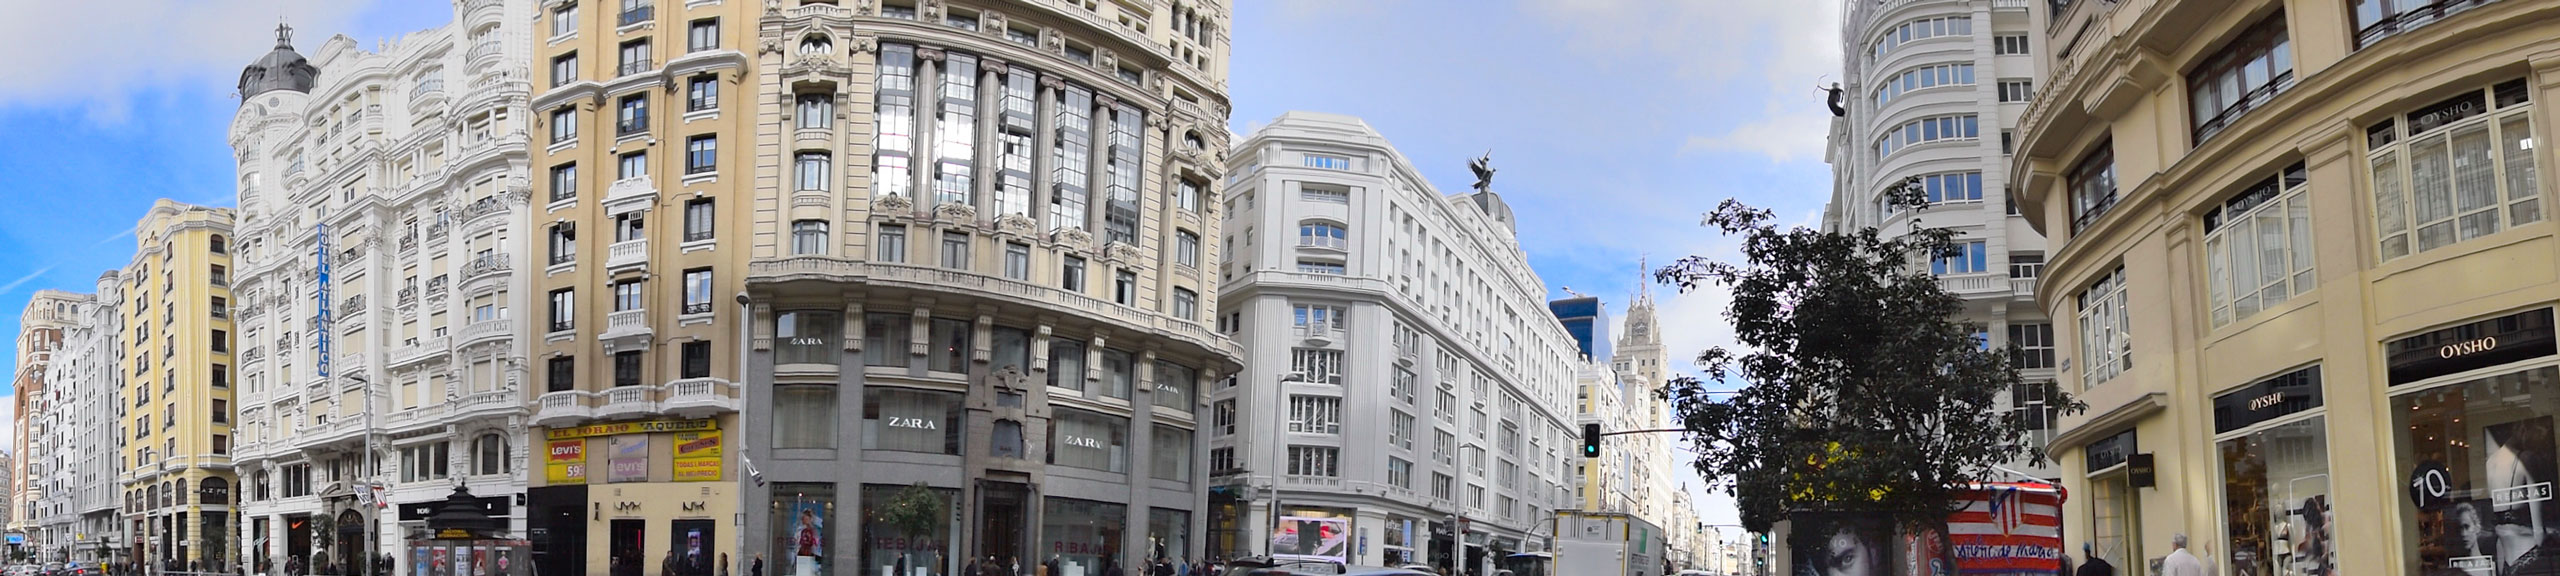 Local comercial Madrid